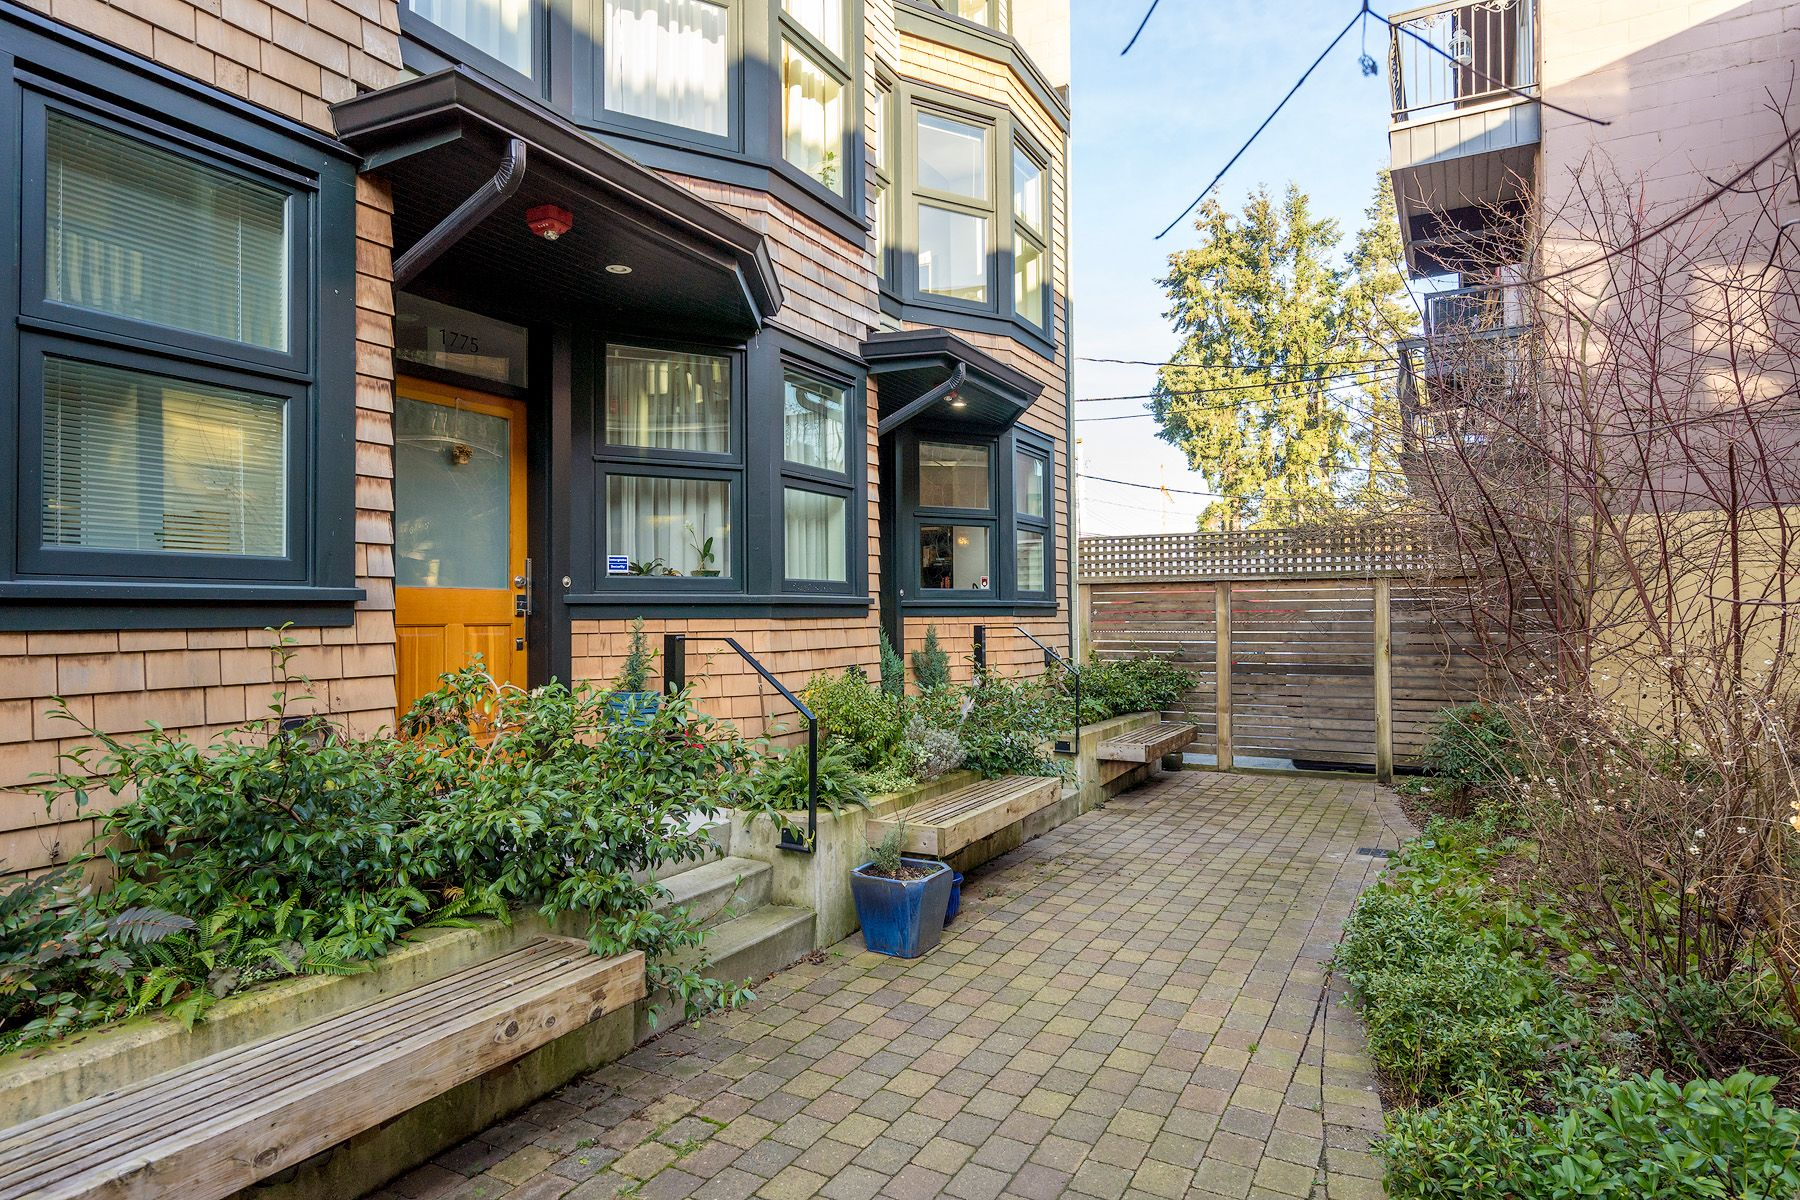 """Main Photo: 1777 E 20TH Avenue in Vancouver: Victoria VE Townhouse for sale in """"CEDAR COTTAGE Townhomes-Gow Bloc"""" (Vancouver East)  : MLS®# R2333733"""